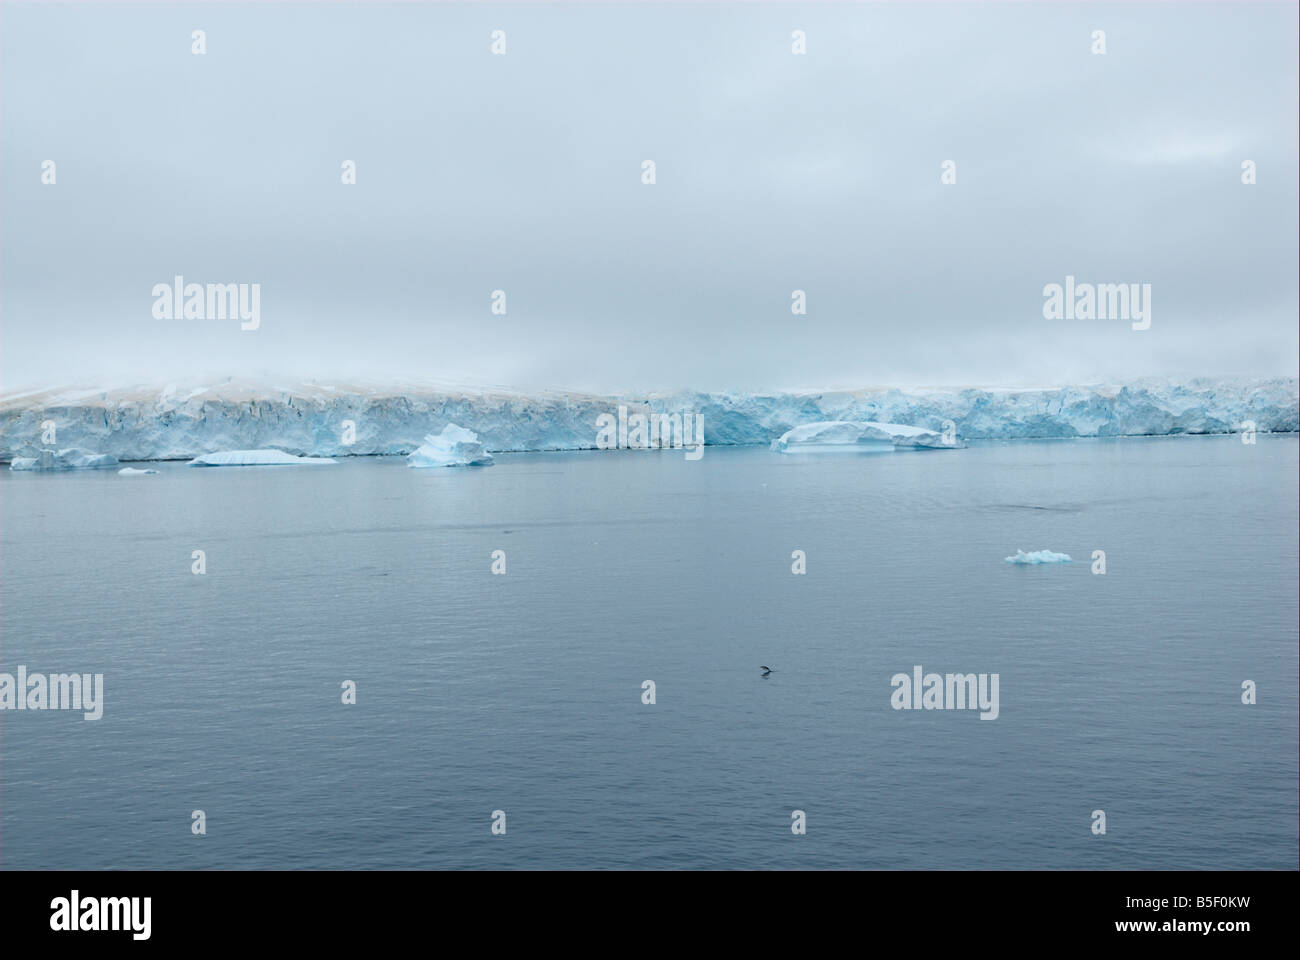 Abort edge of a glacier at the waterside - Stock Image